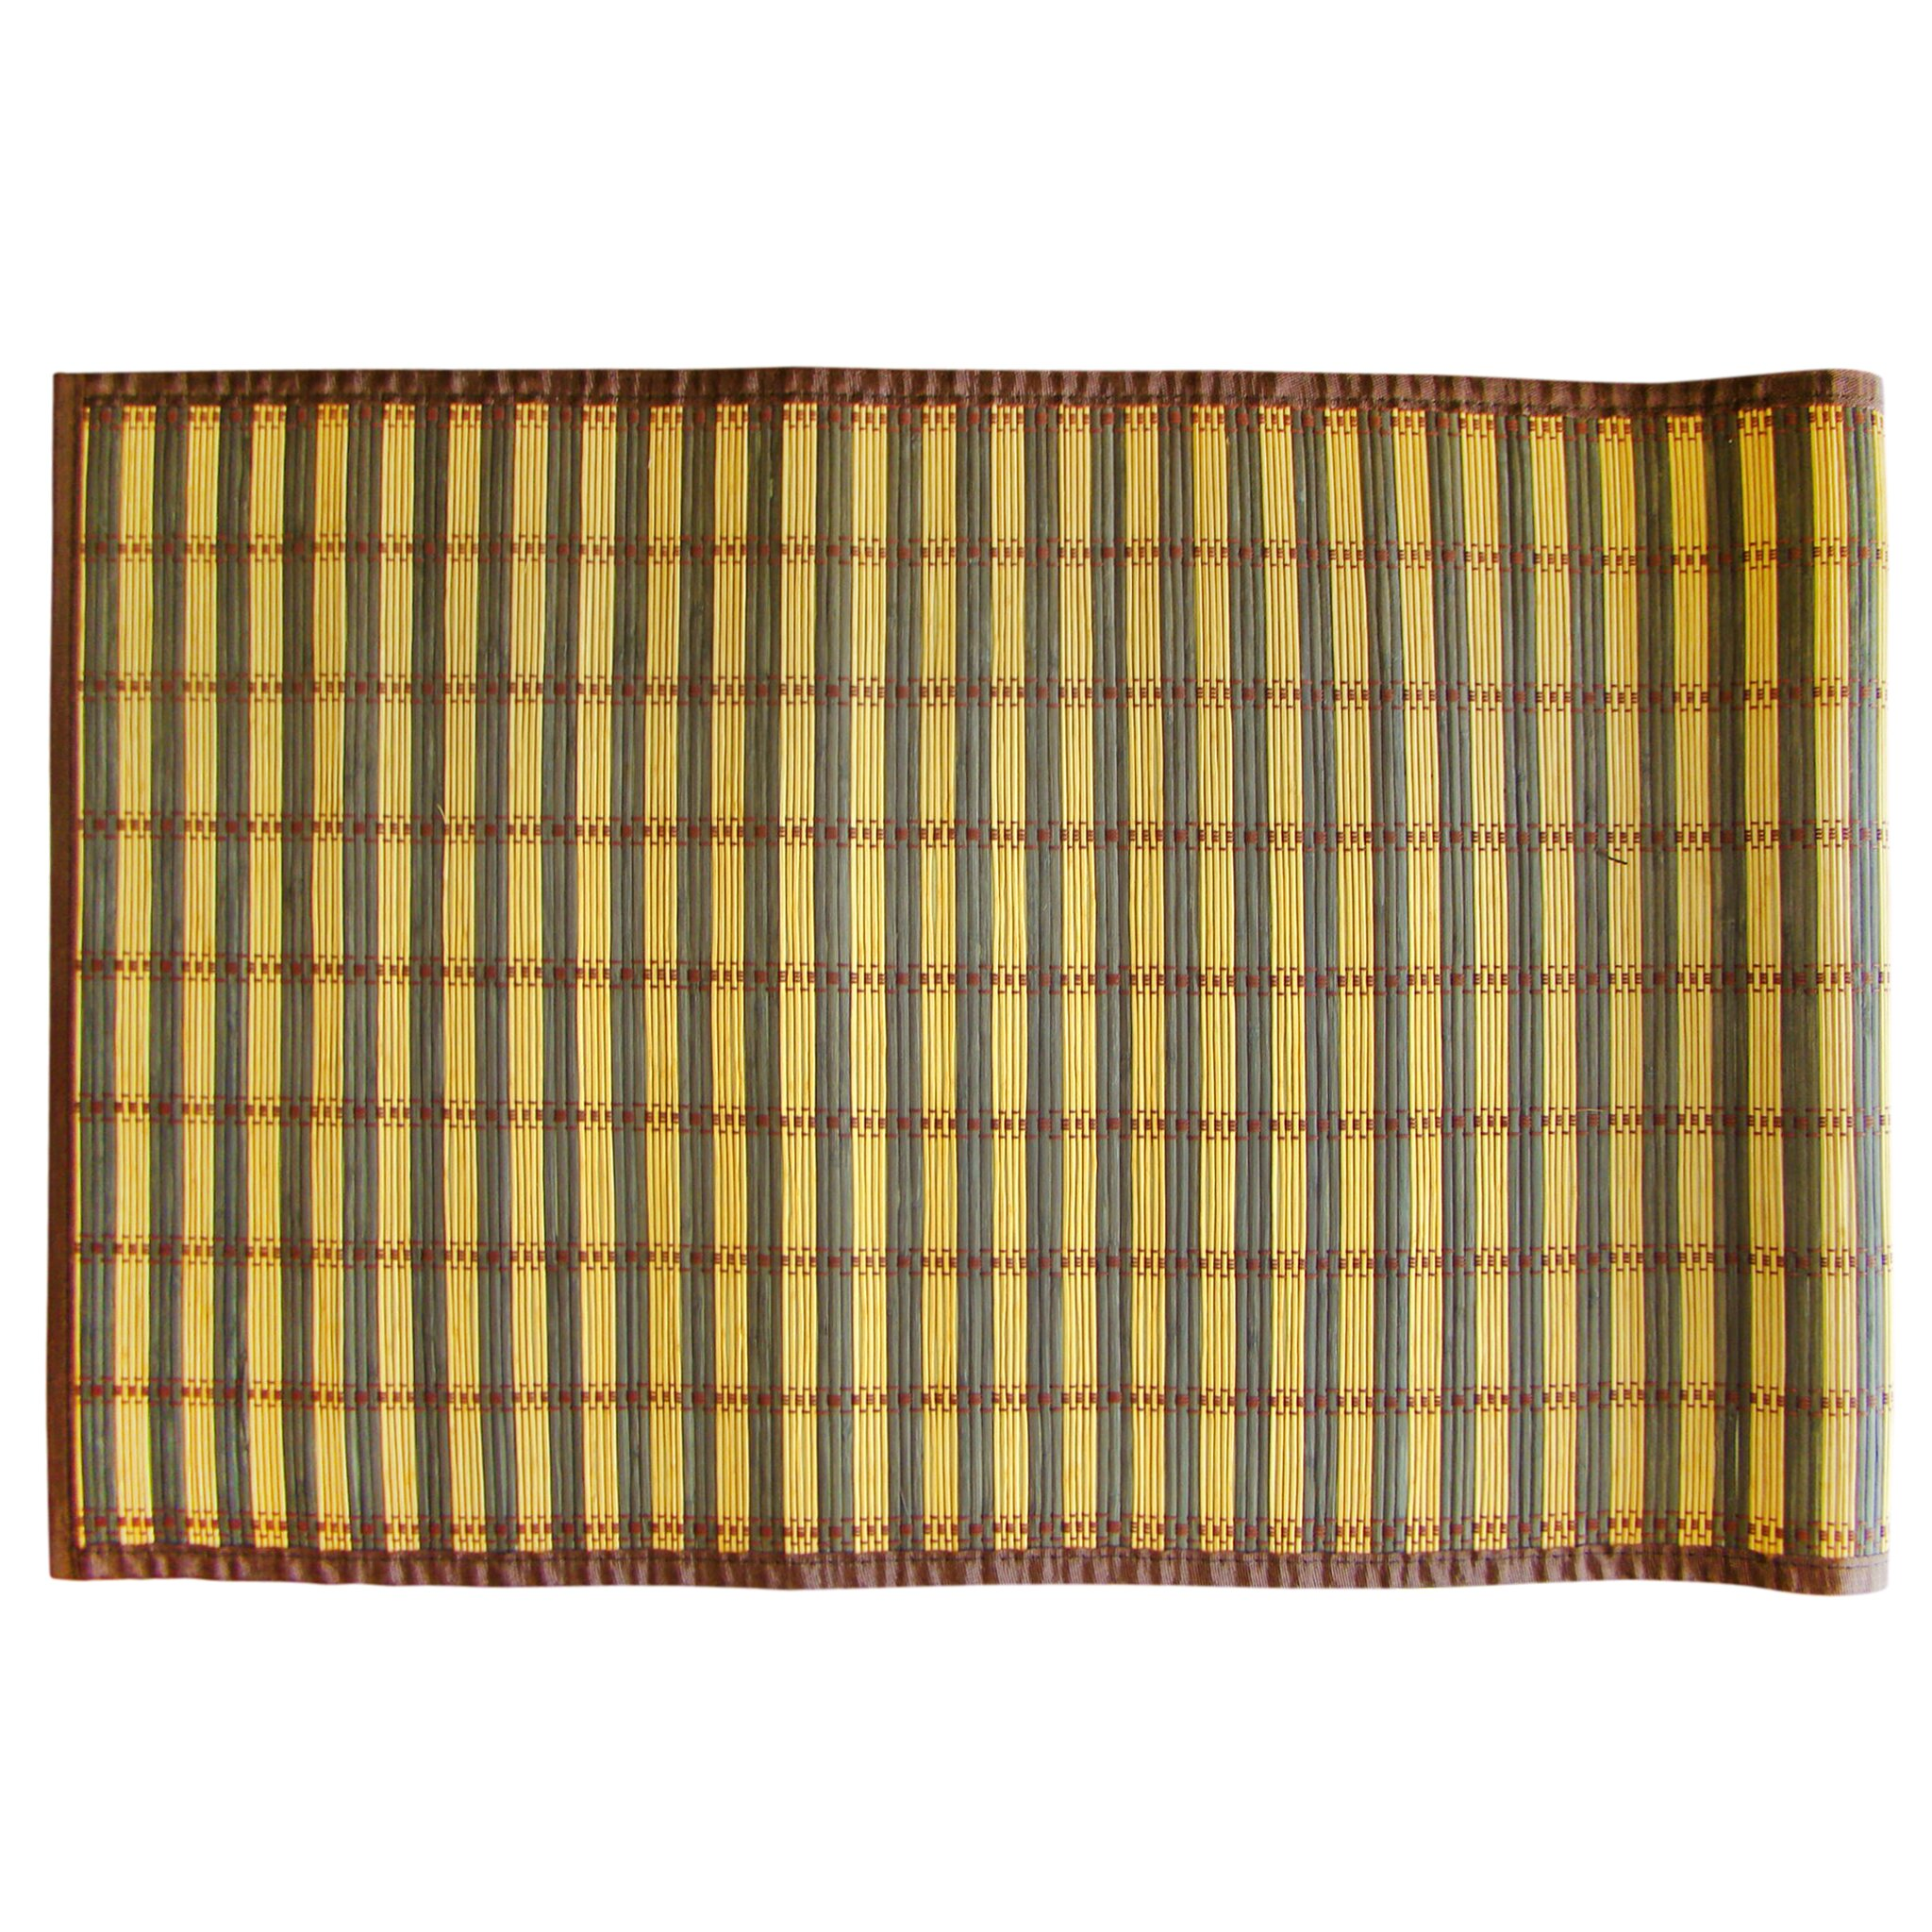 Bamboo Rug Runner: Textiles Plus Inc. Bamboo Rayon Floor Runner Outdoor Area